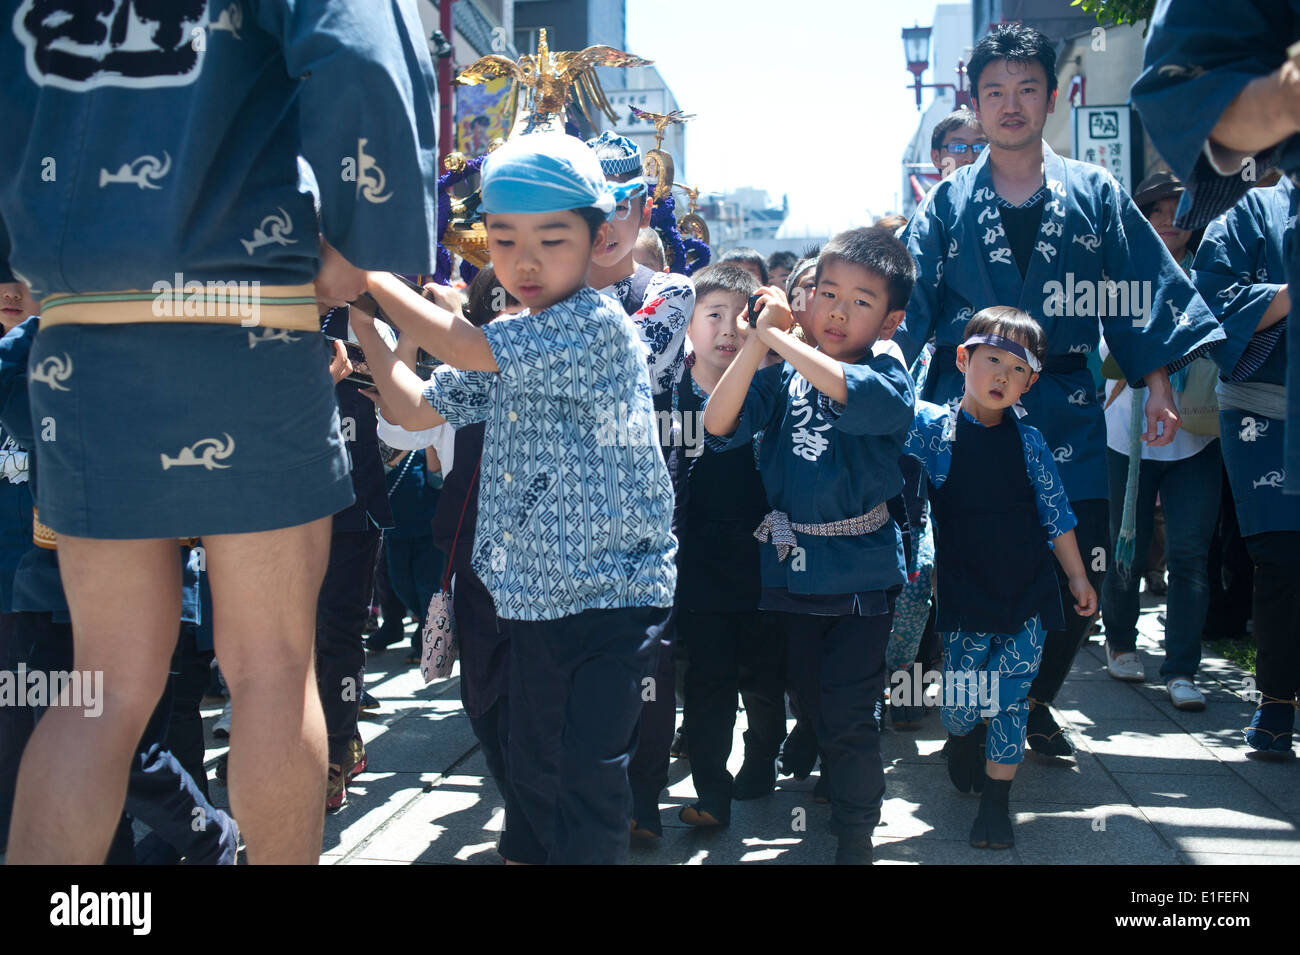 Tokyo Japan 2104 - Kids carrying a shrine during Sanja Matsuri festival - Stock Image